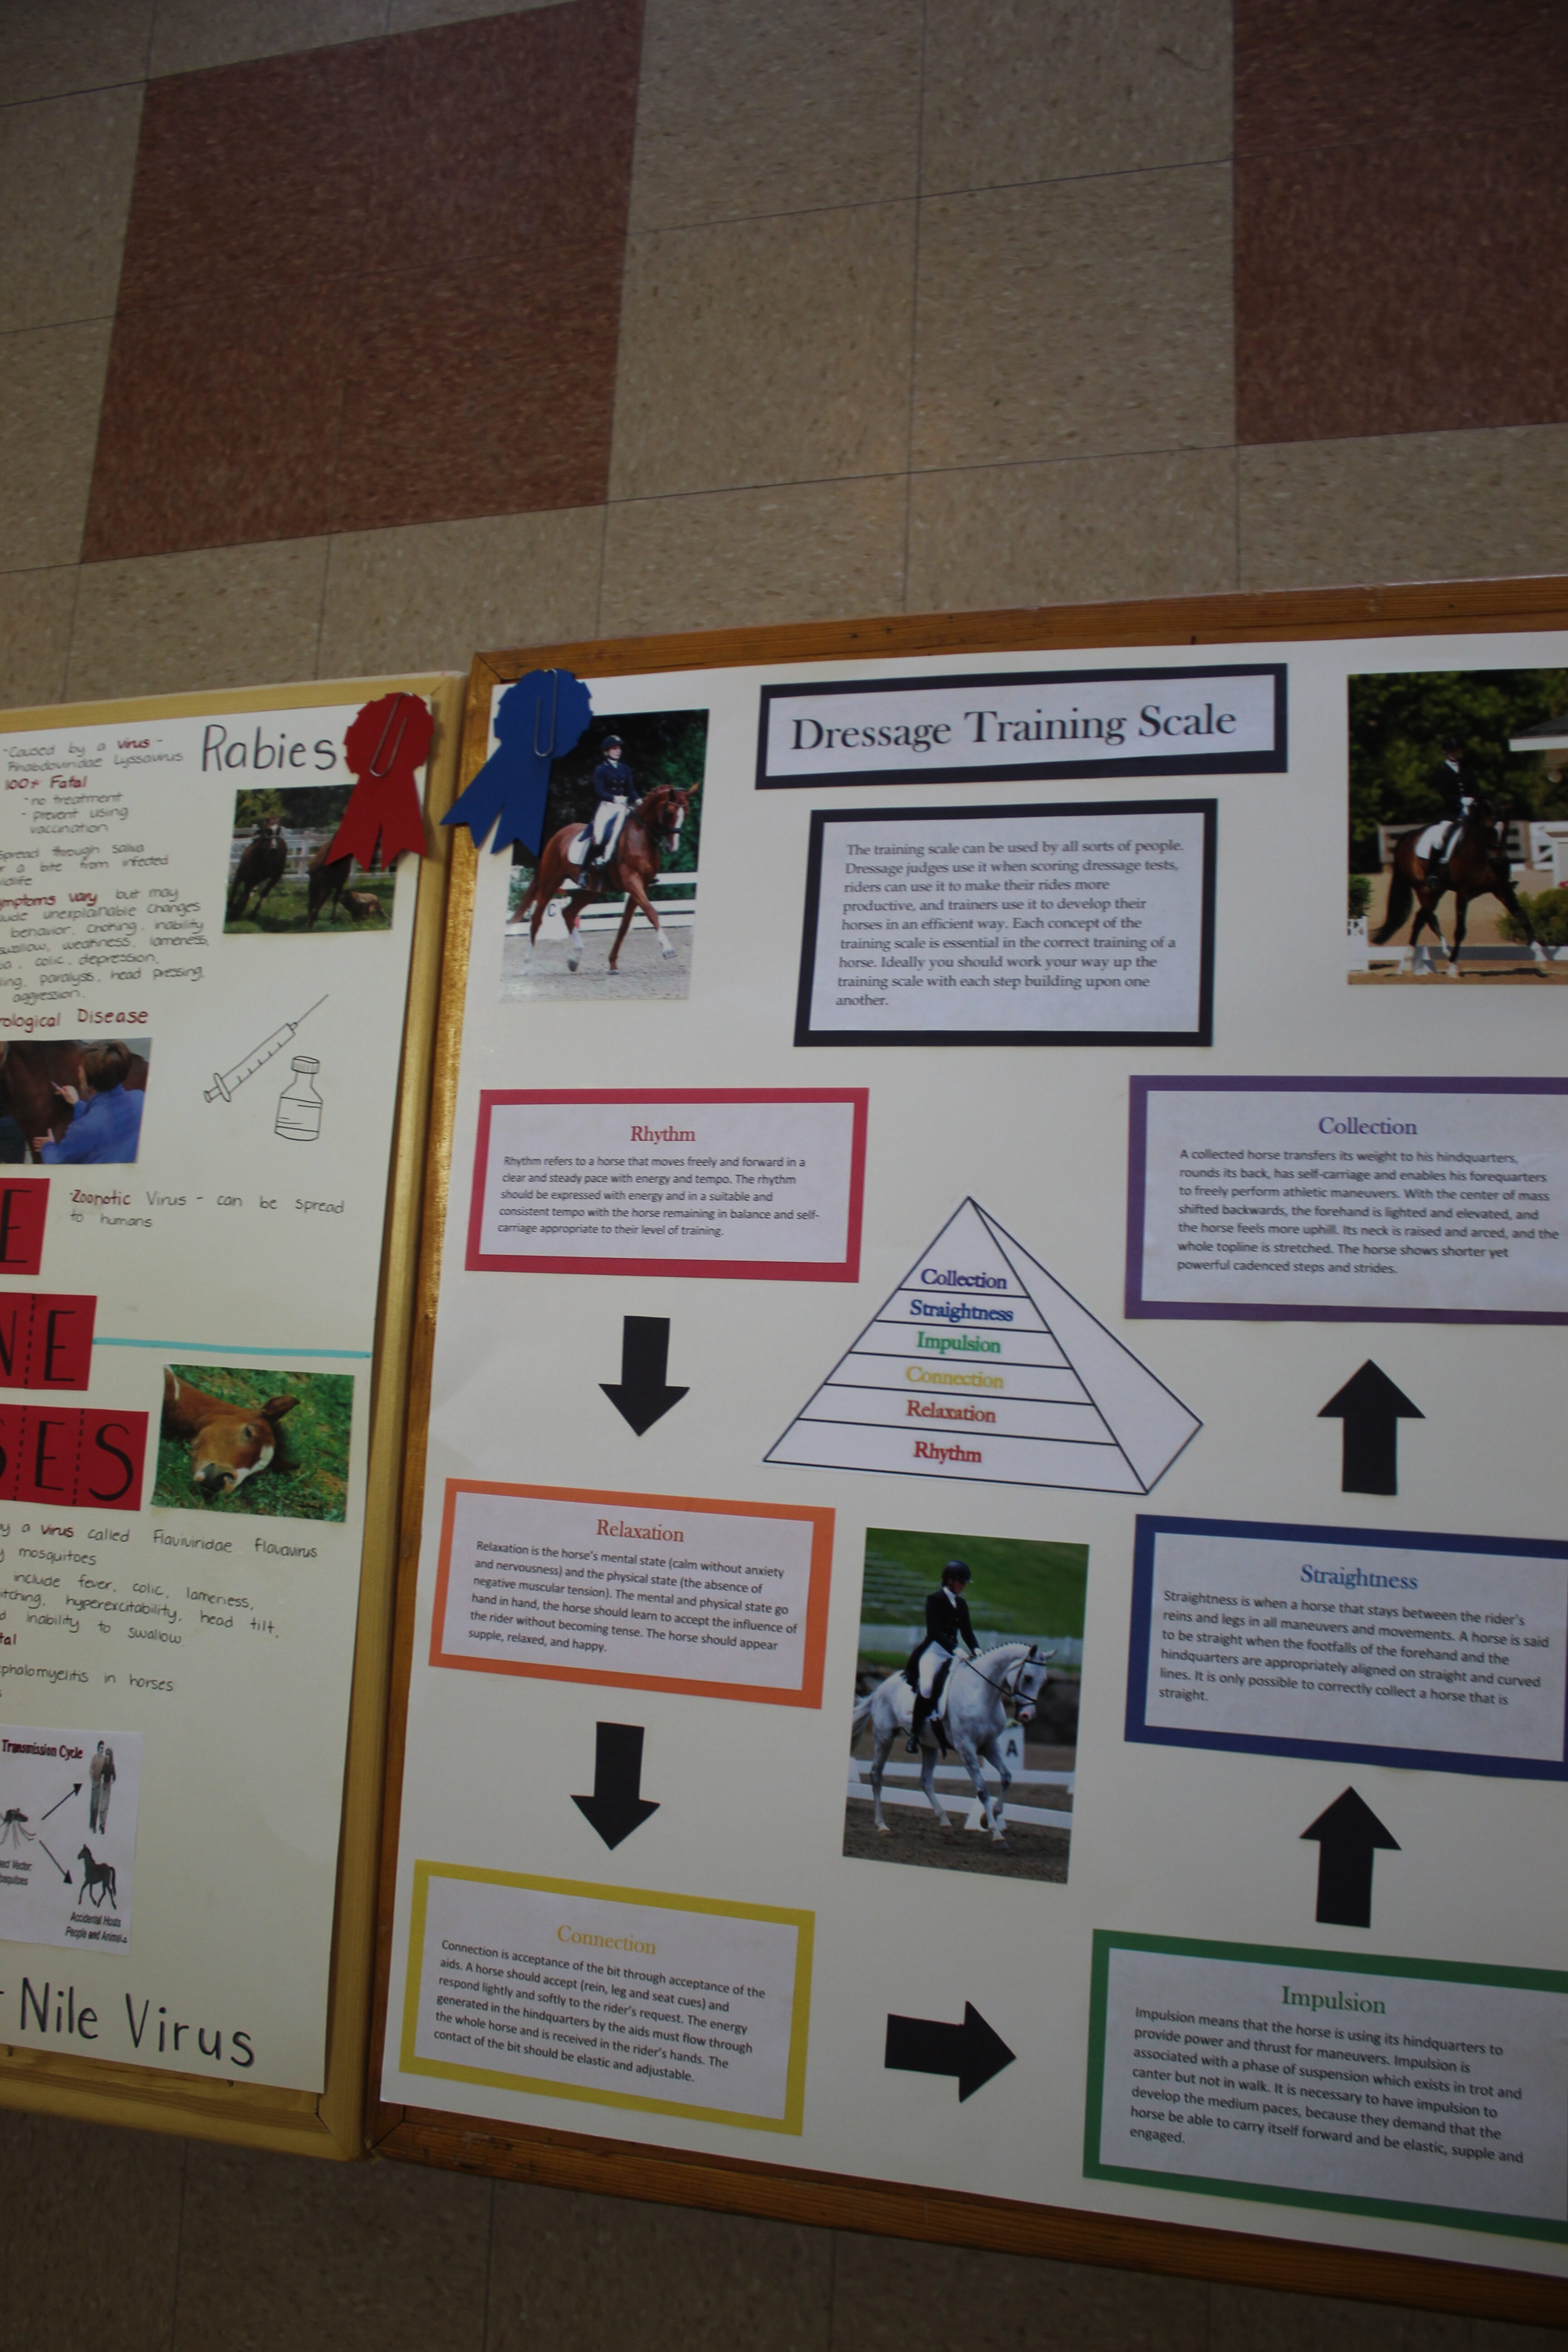 Photo of a poster project